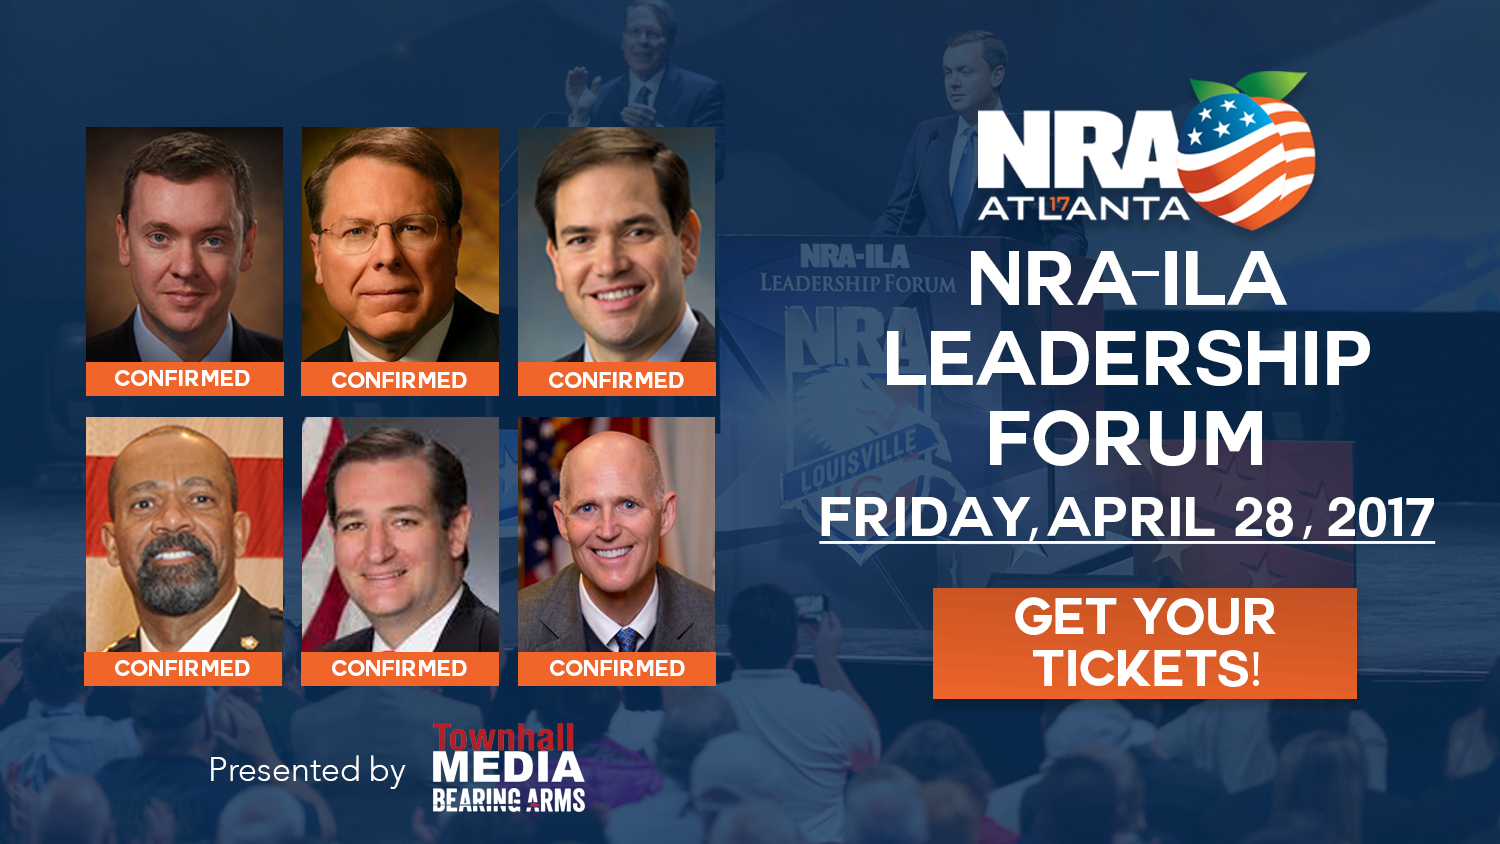 Join us on Friday, April 28, for the NRA ILA Leadership Forum!